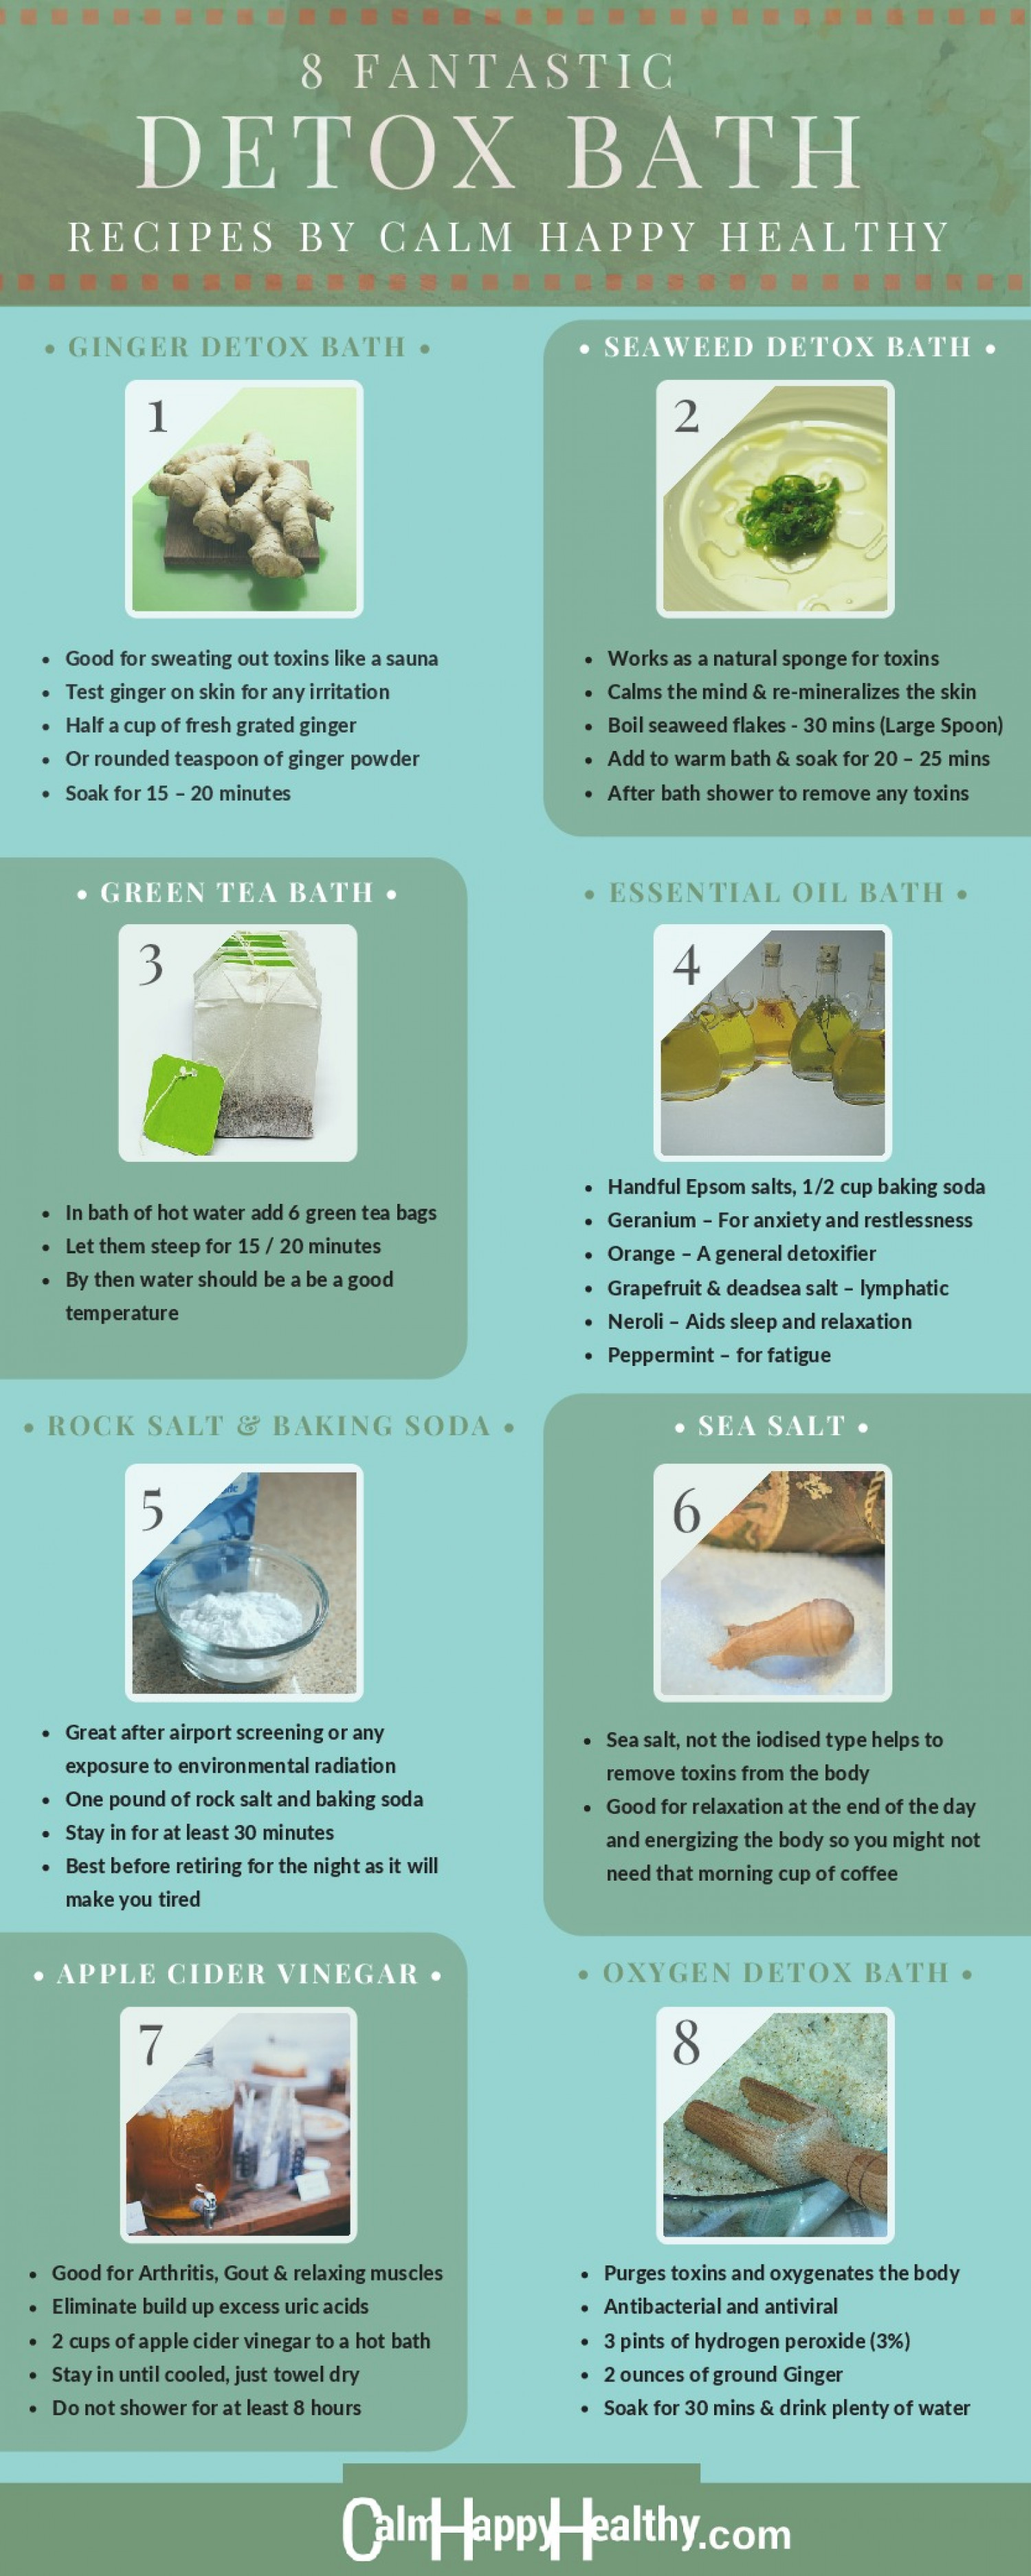 8 Fantastic Detox Bath Recipes Infographic